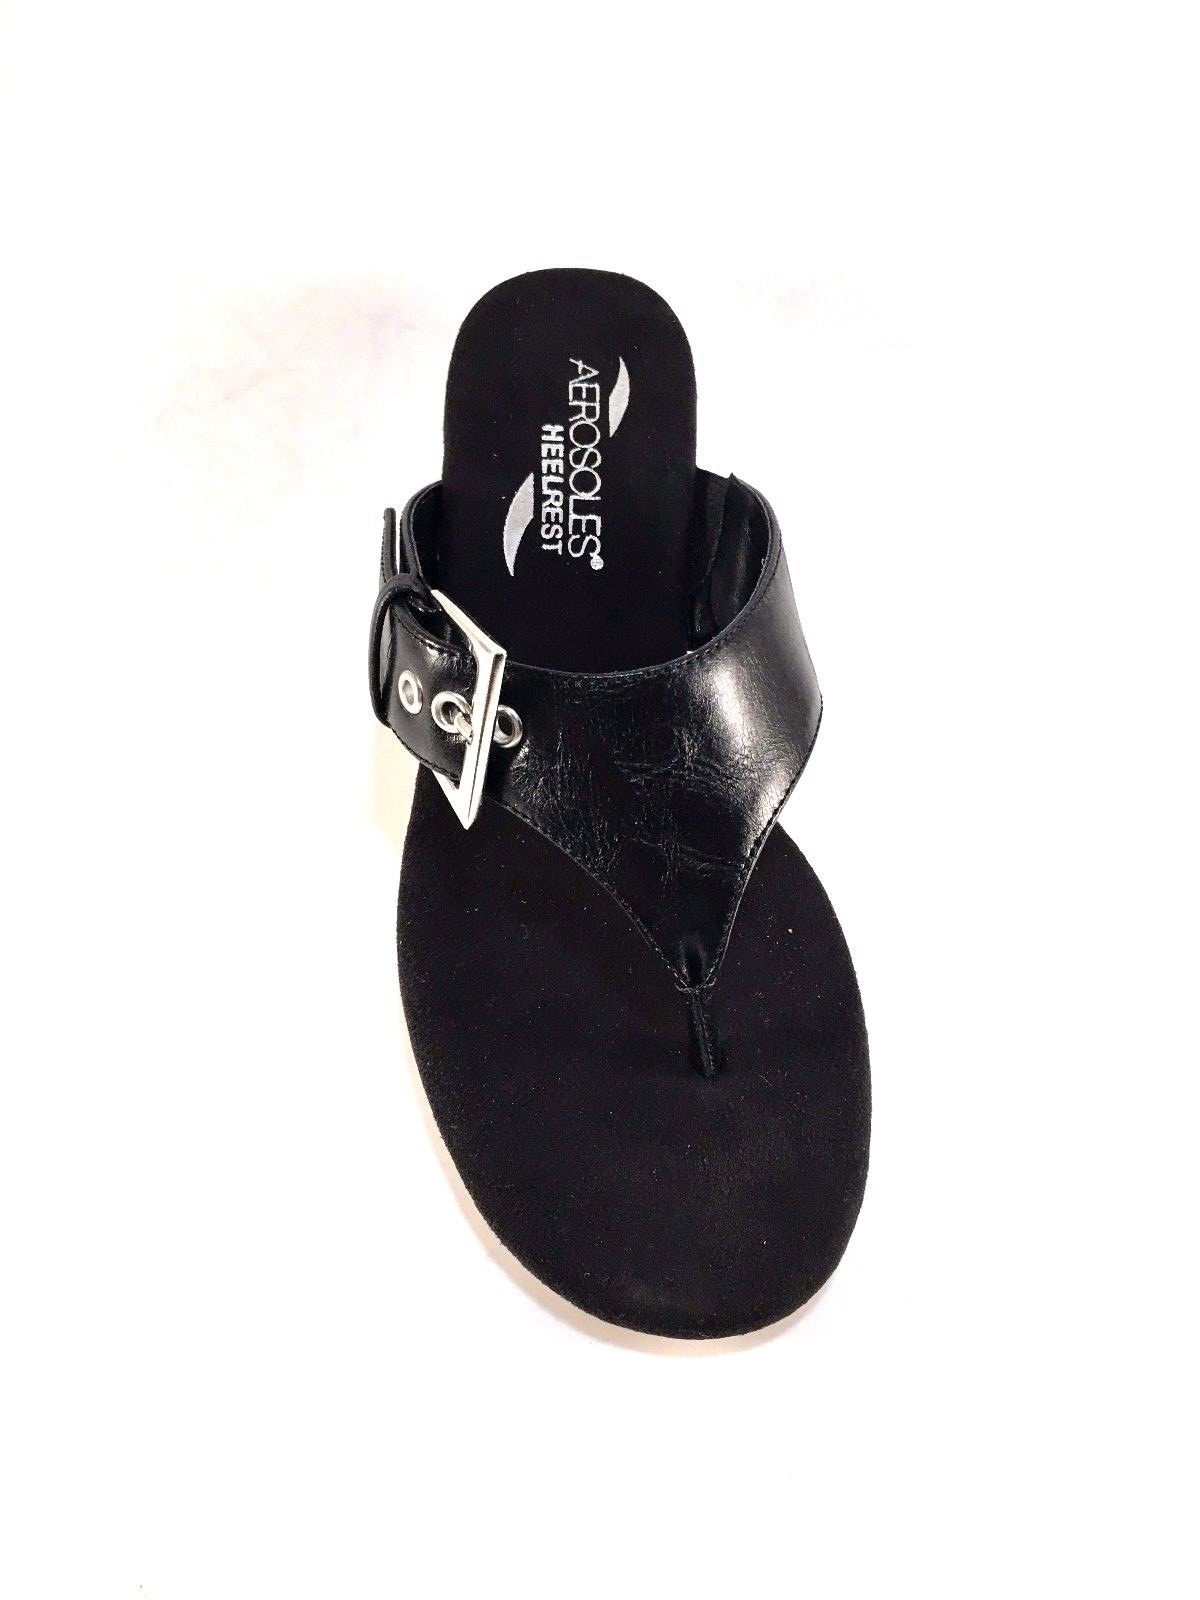 Aerosoles Flower Black Wedge Platform Thong Slip On Sandals